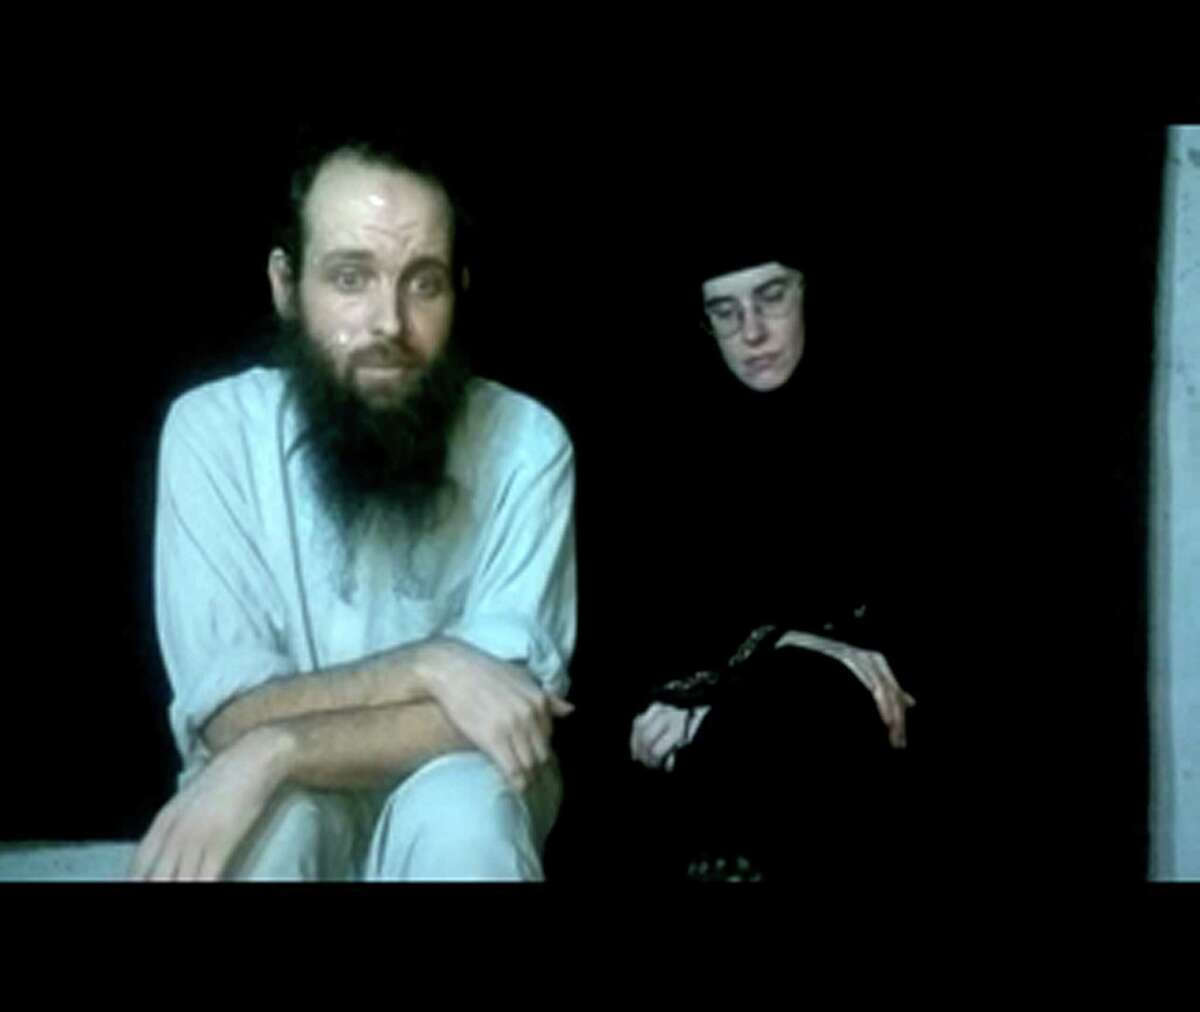 This frame grab from video provided by the Coleman family shows Caitlan Coleman and Joshua Boyle. The family of a then-pregnant American woman who went missing in Afghanistan in late 2012 with her Canadian husband received two videos last year in which the couple asked the U.S. government to help free them from their Taliban captors, The Associated Press has learned. The videos offer the first and only clue about what happened to Caitlan Coleman and Joshua Boyle after they lost touch with their family 20 months ago while traveling in a mountainous region near the capital, Kabul. U.S. law enforcement officials investigating the couple?'s disappearance consider the videos authentic but caution that they hold limited investigative value, since it?'s not clear when or where they were filmed. (AP Photo/Coleman Family) ORG XMIT: WX202